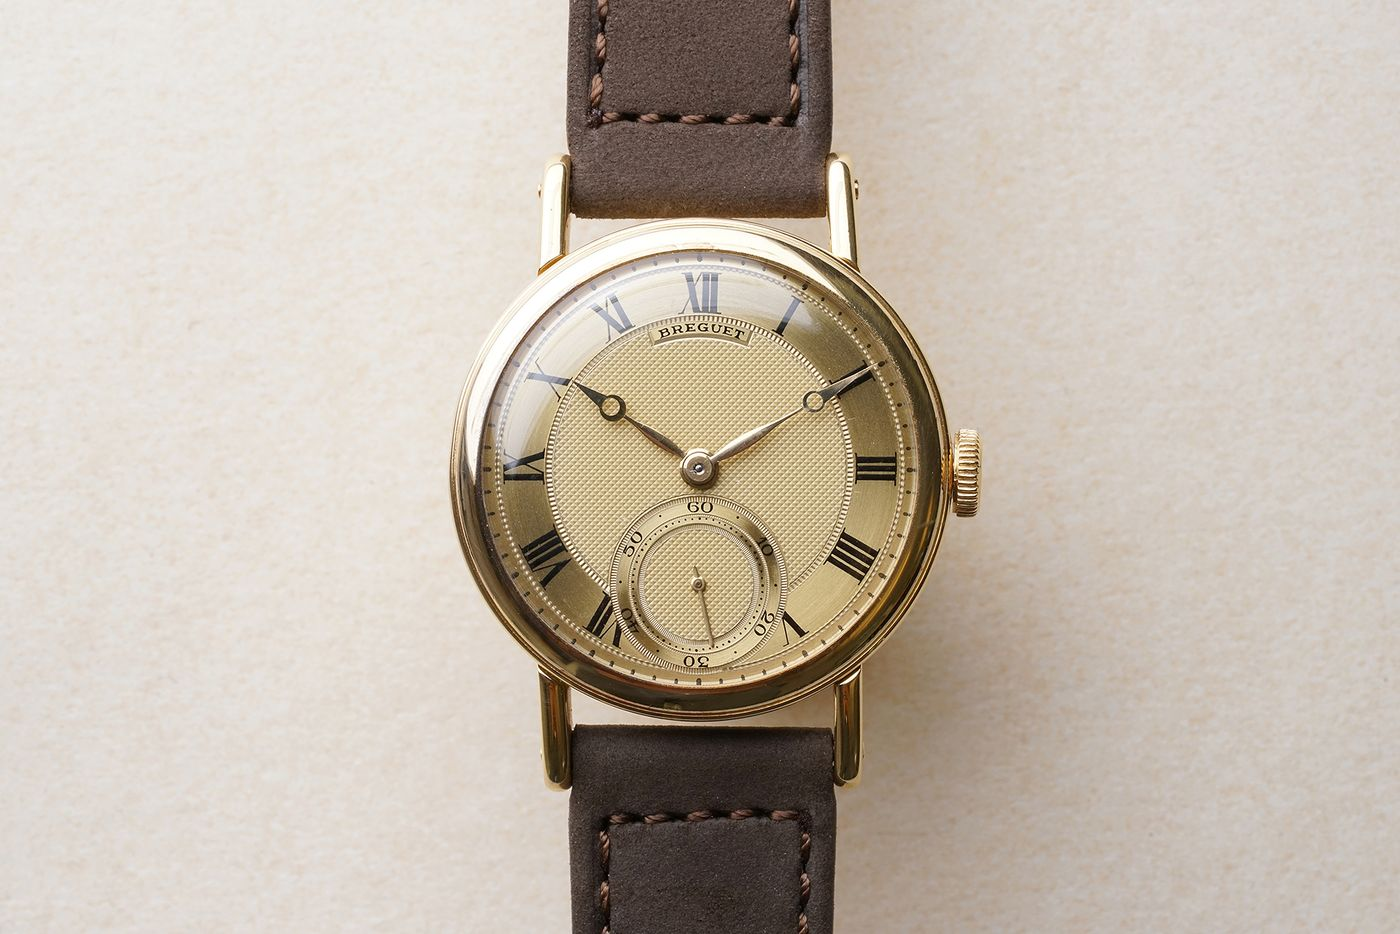 Phillips Dress Watches A Must Have In Any Collection